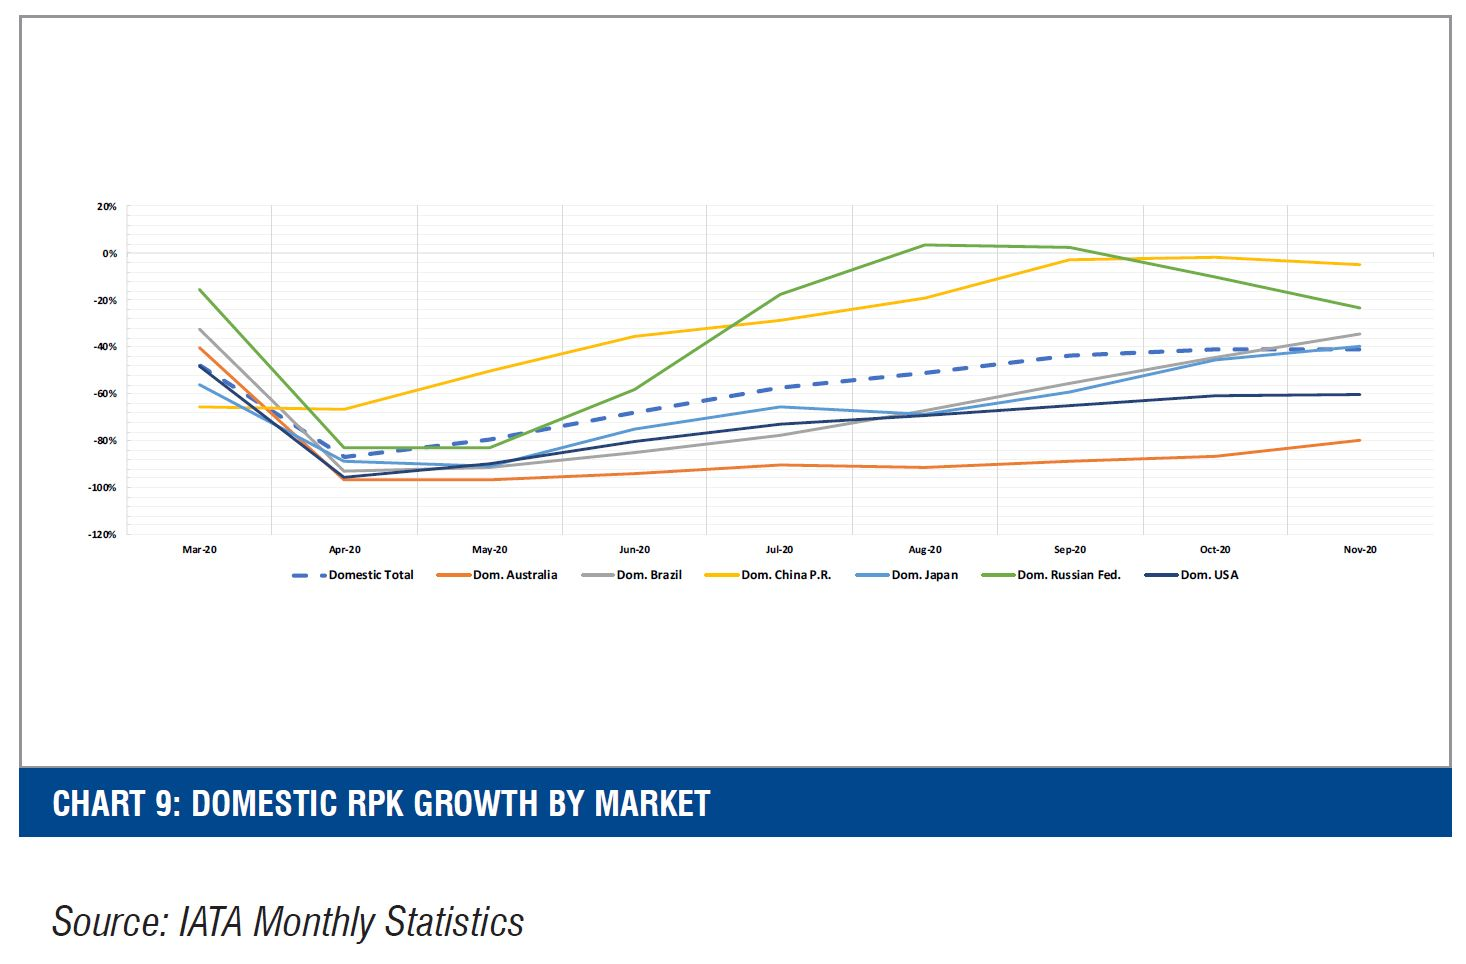 CHART 9: DOMESTIC RPK GROWTH BY MARKET